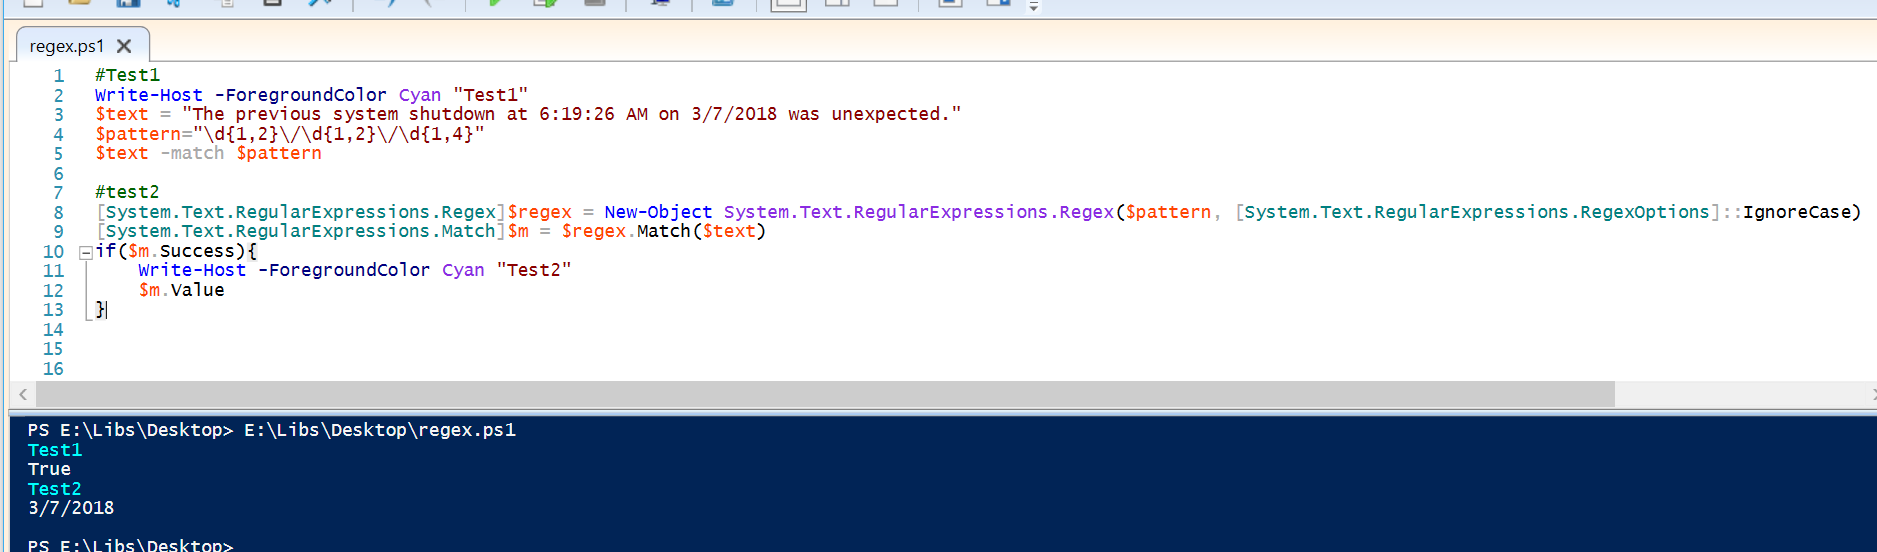 Powershell - simple regex to find a date only